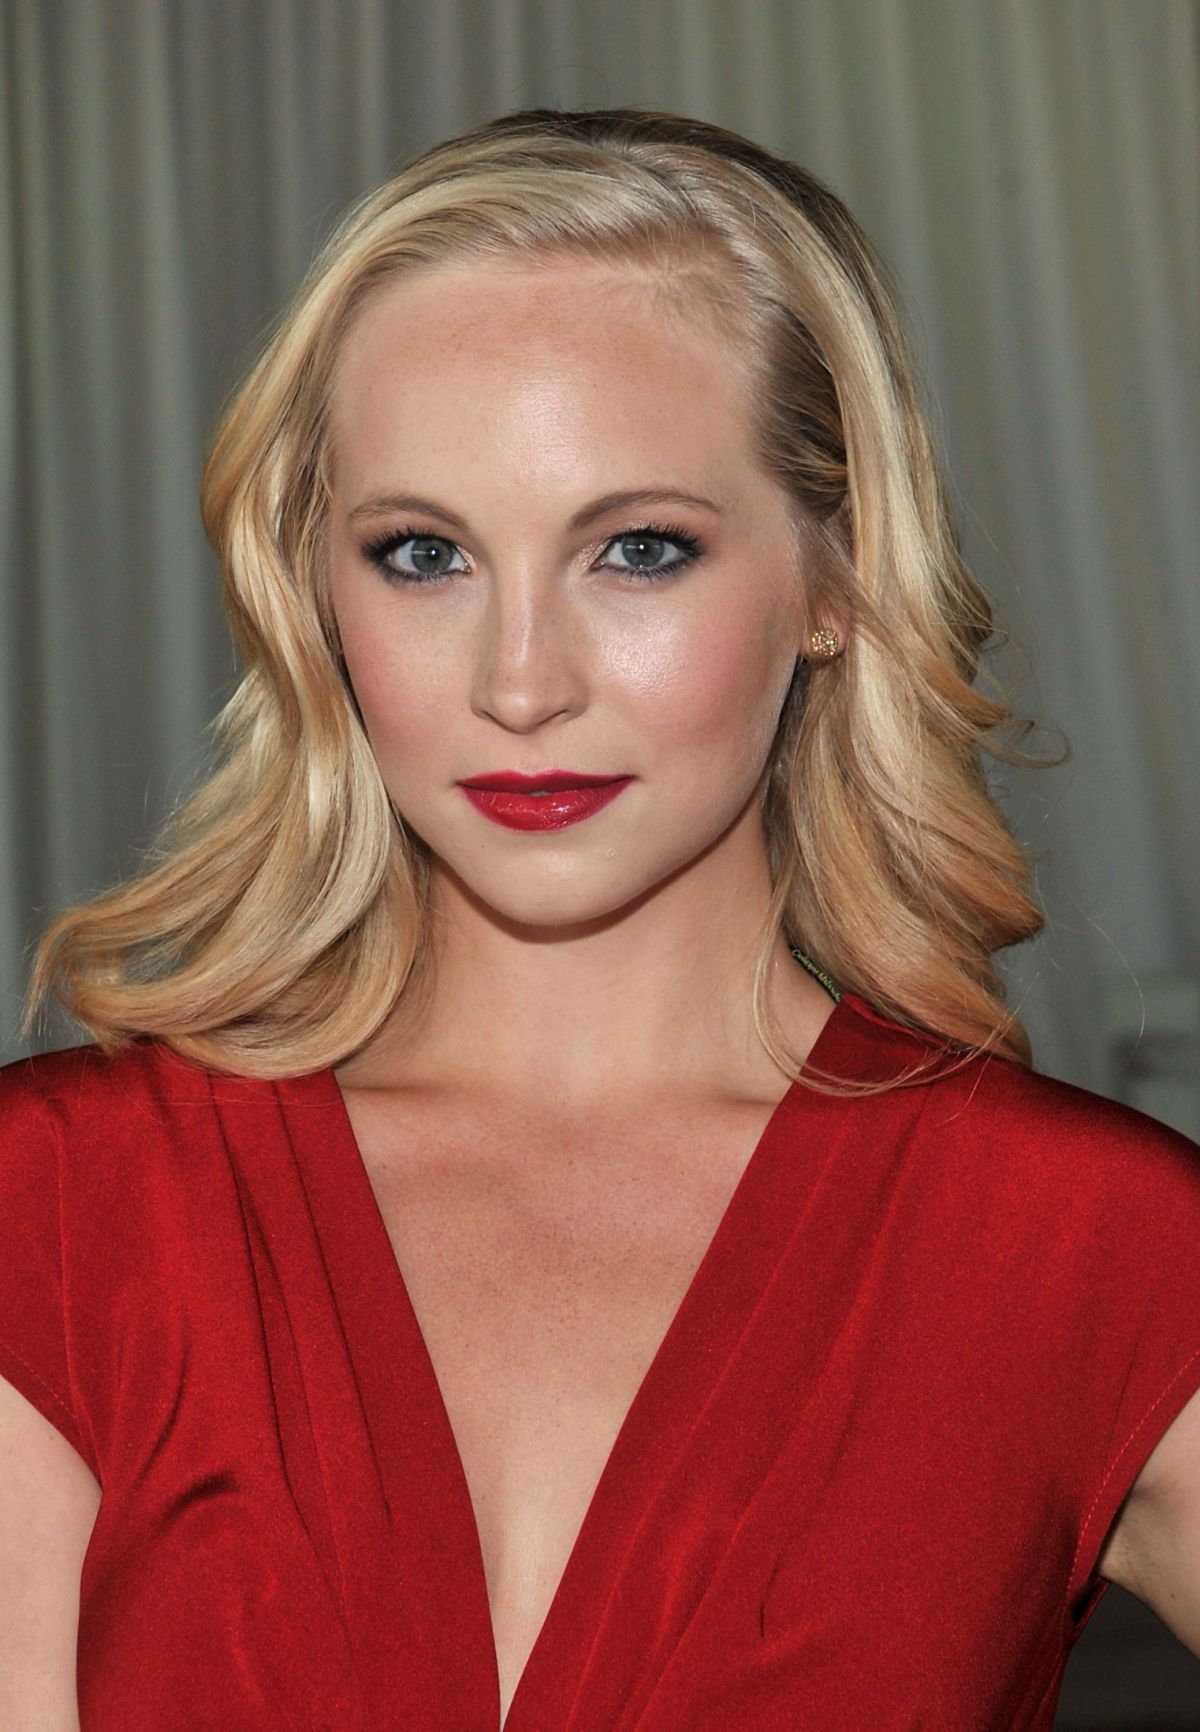 candice accola vkcandice accola gif, candice accola vk, candice accola песни, candice accola photoshoot, candice accola gif hunt, candice accola tumblr, candice accola png, candice accola wiki, candice accola 2016, candice accola instagram, candice accola – go in peace, candice accola king, candice accola how i met your mother, candice accola 2017, candice accola originals, candice accola site, candice accola wikipedia romana, candice accola icons, candice accola joe king, candice accola daily